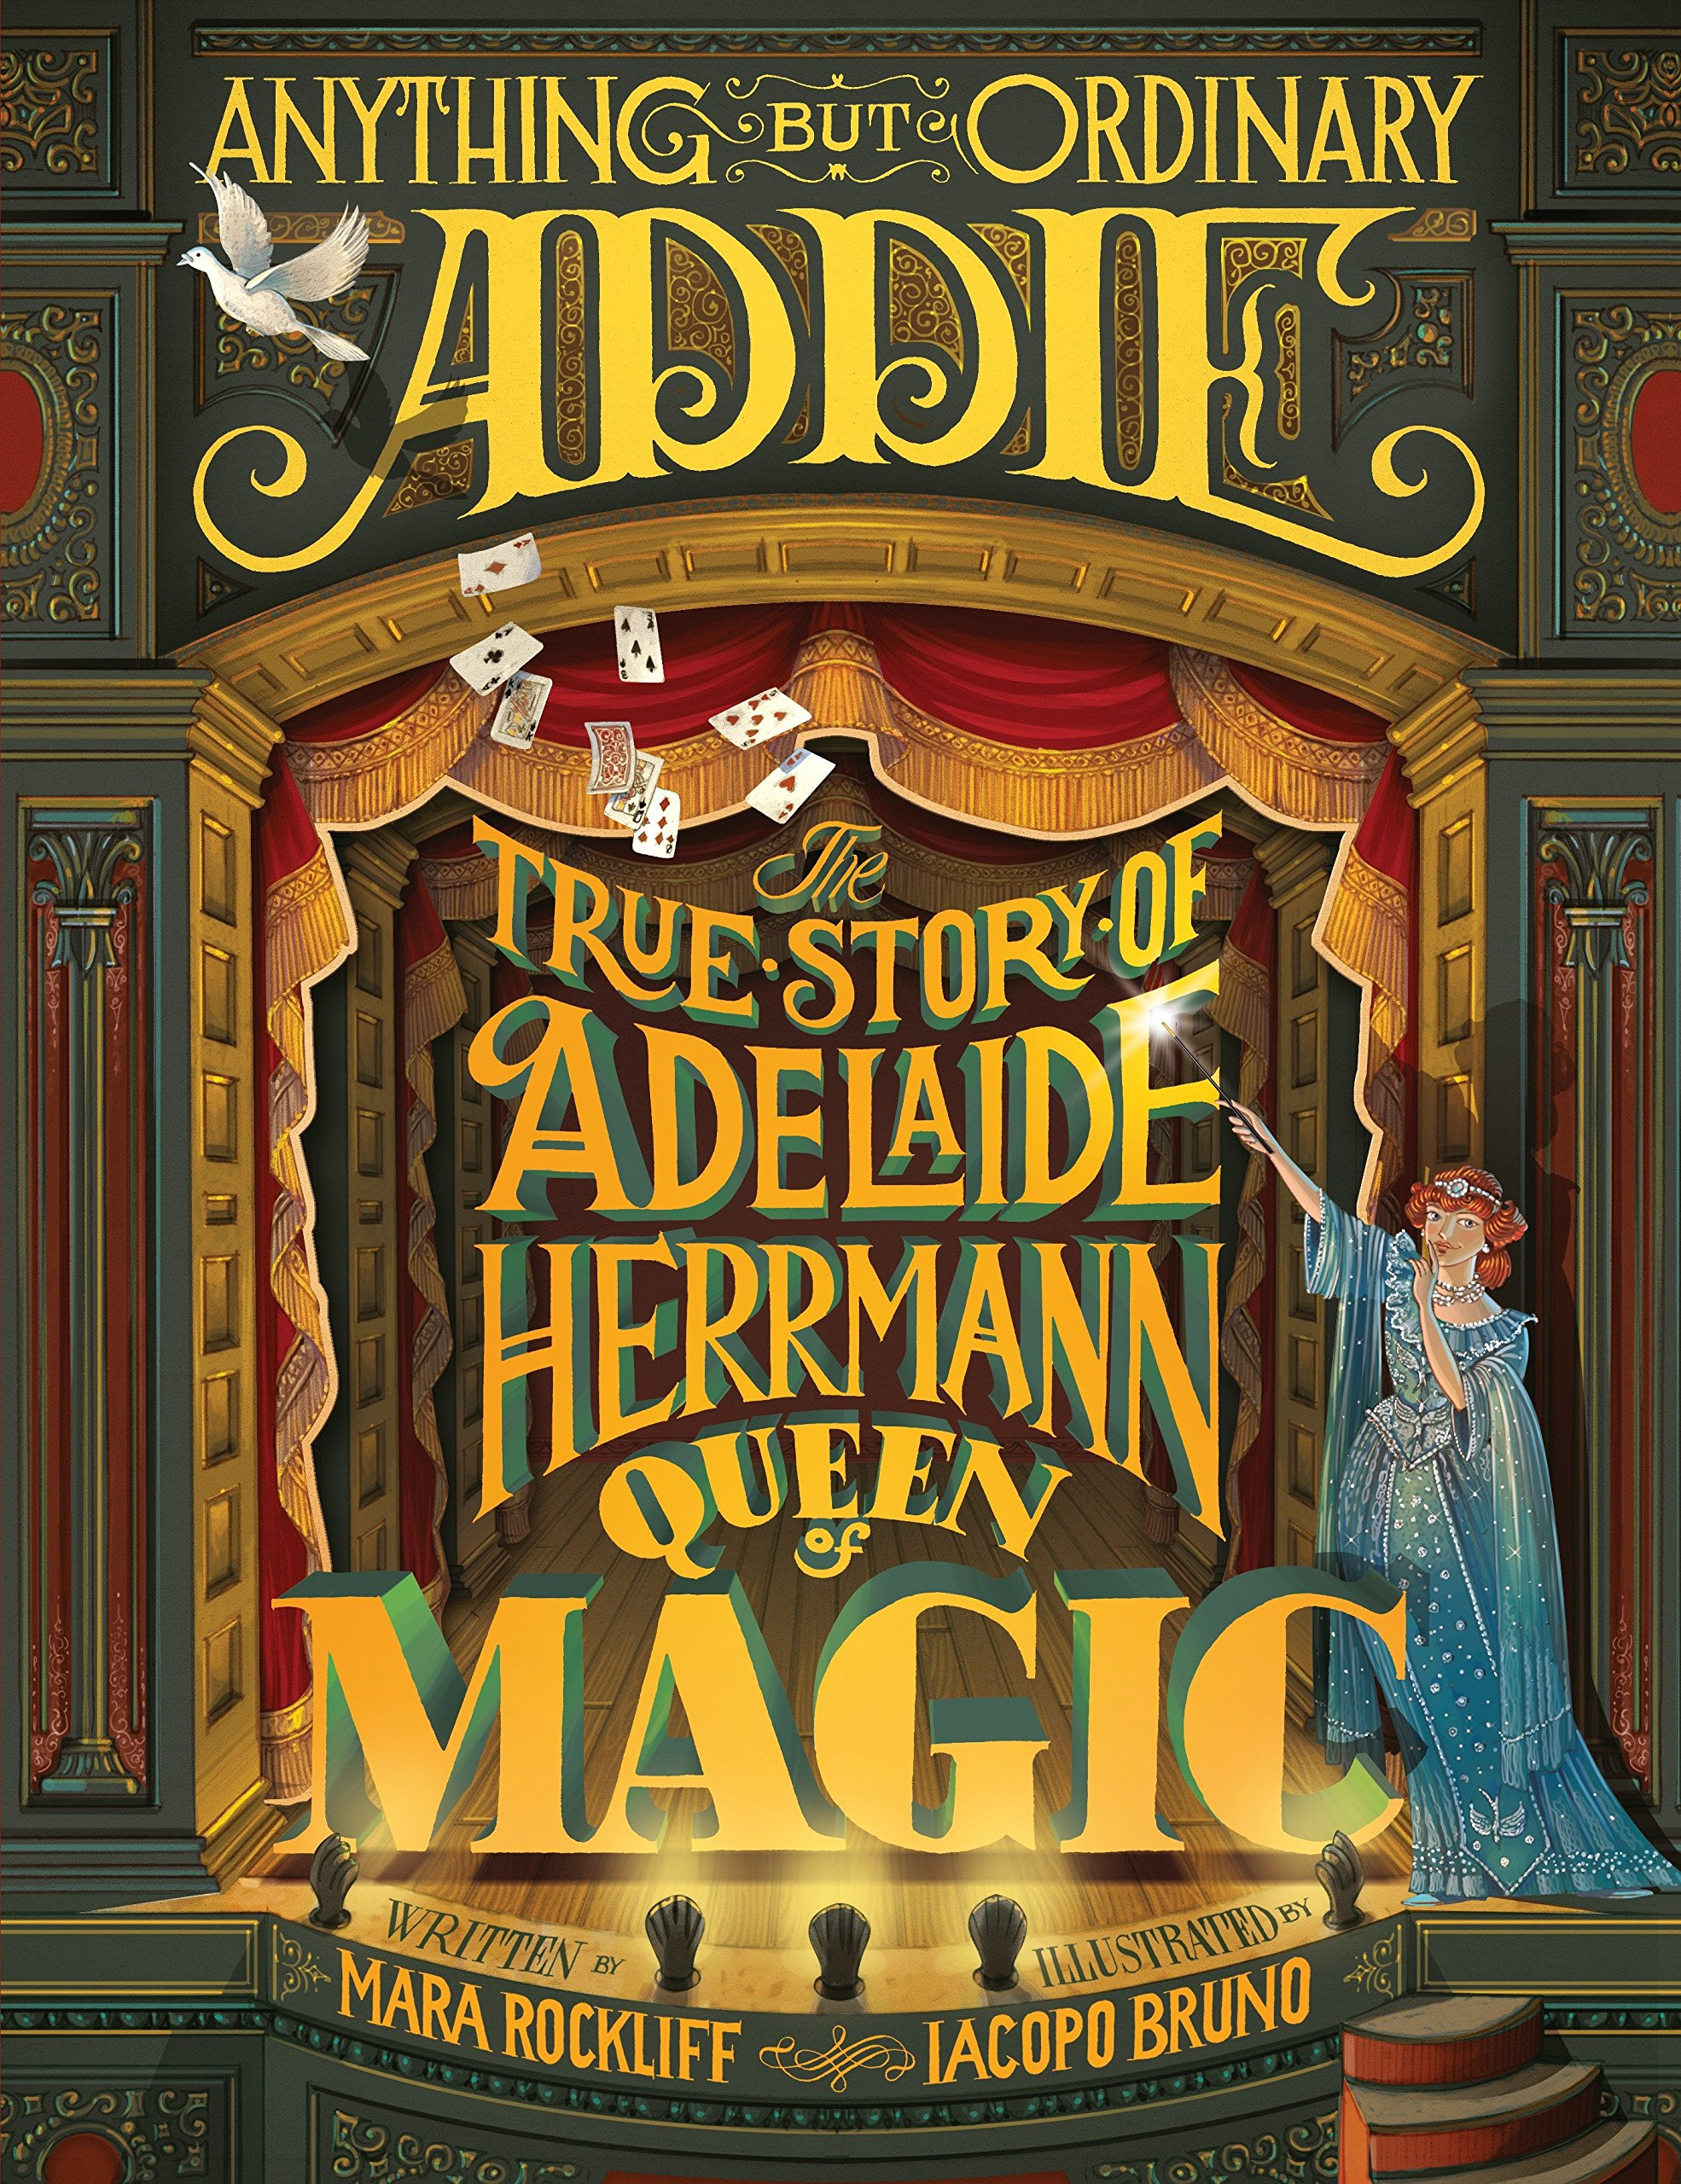 Image result for anything but ordinary addie